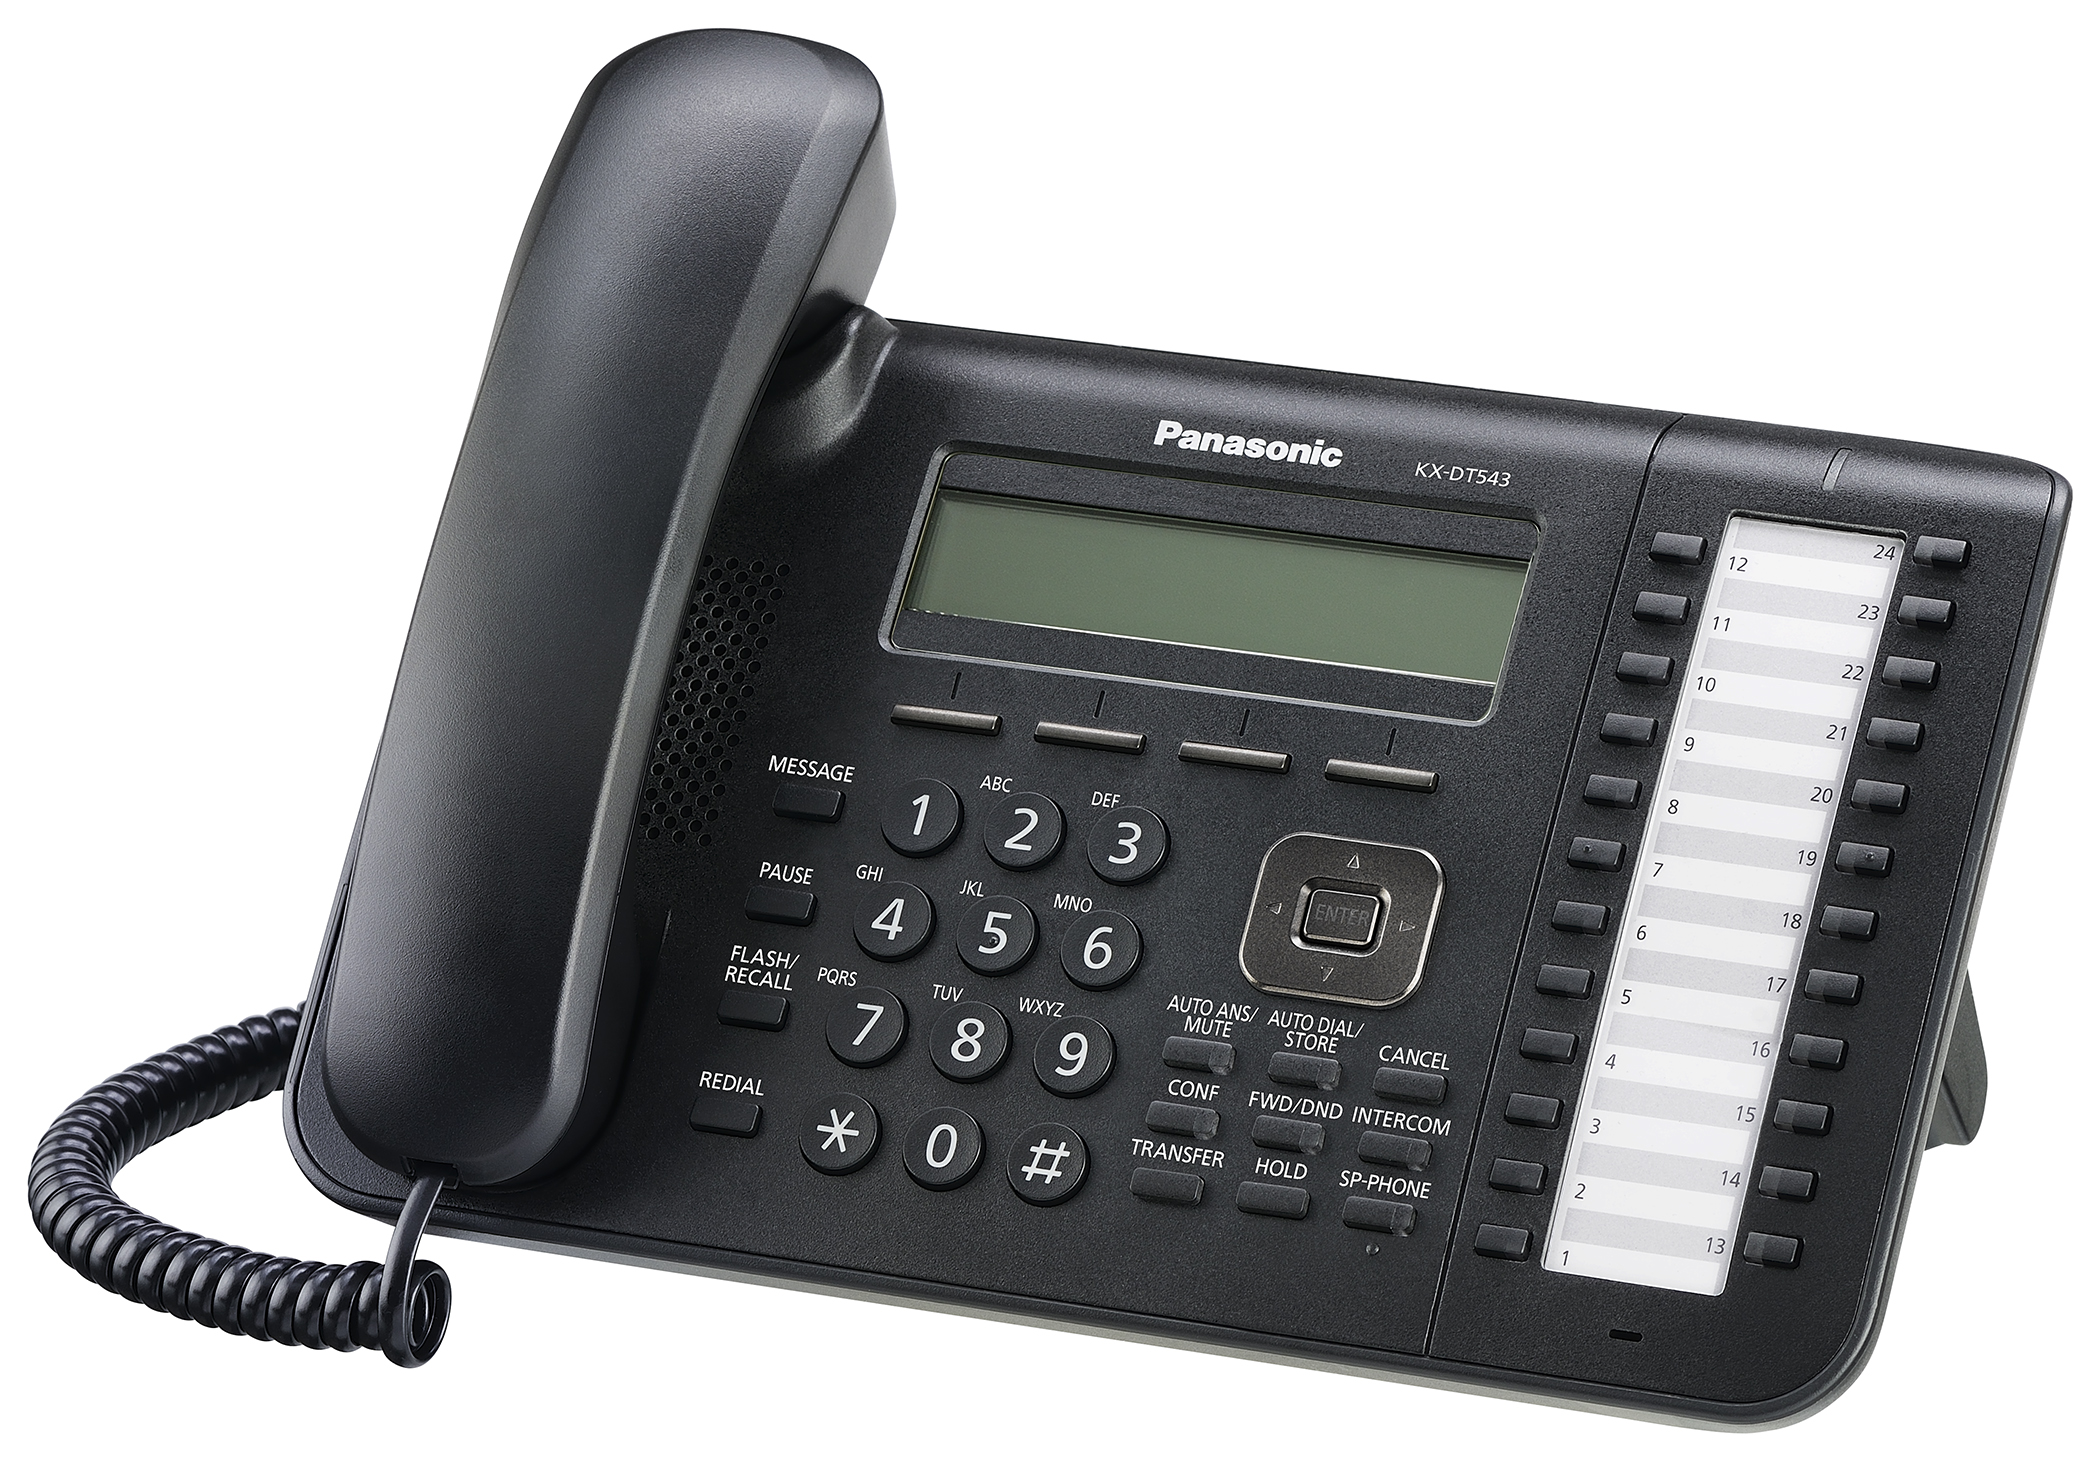 Switchtek installs and maintains Panasonic Telephone Systems